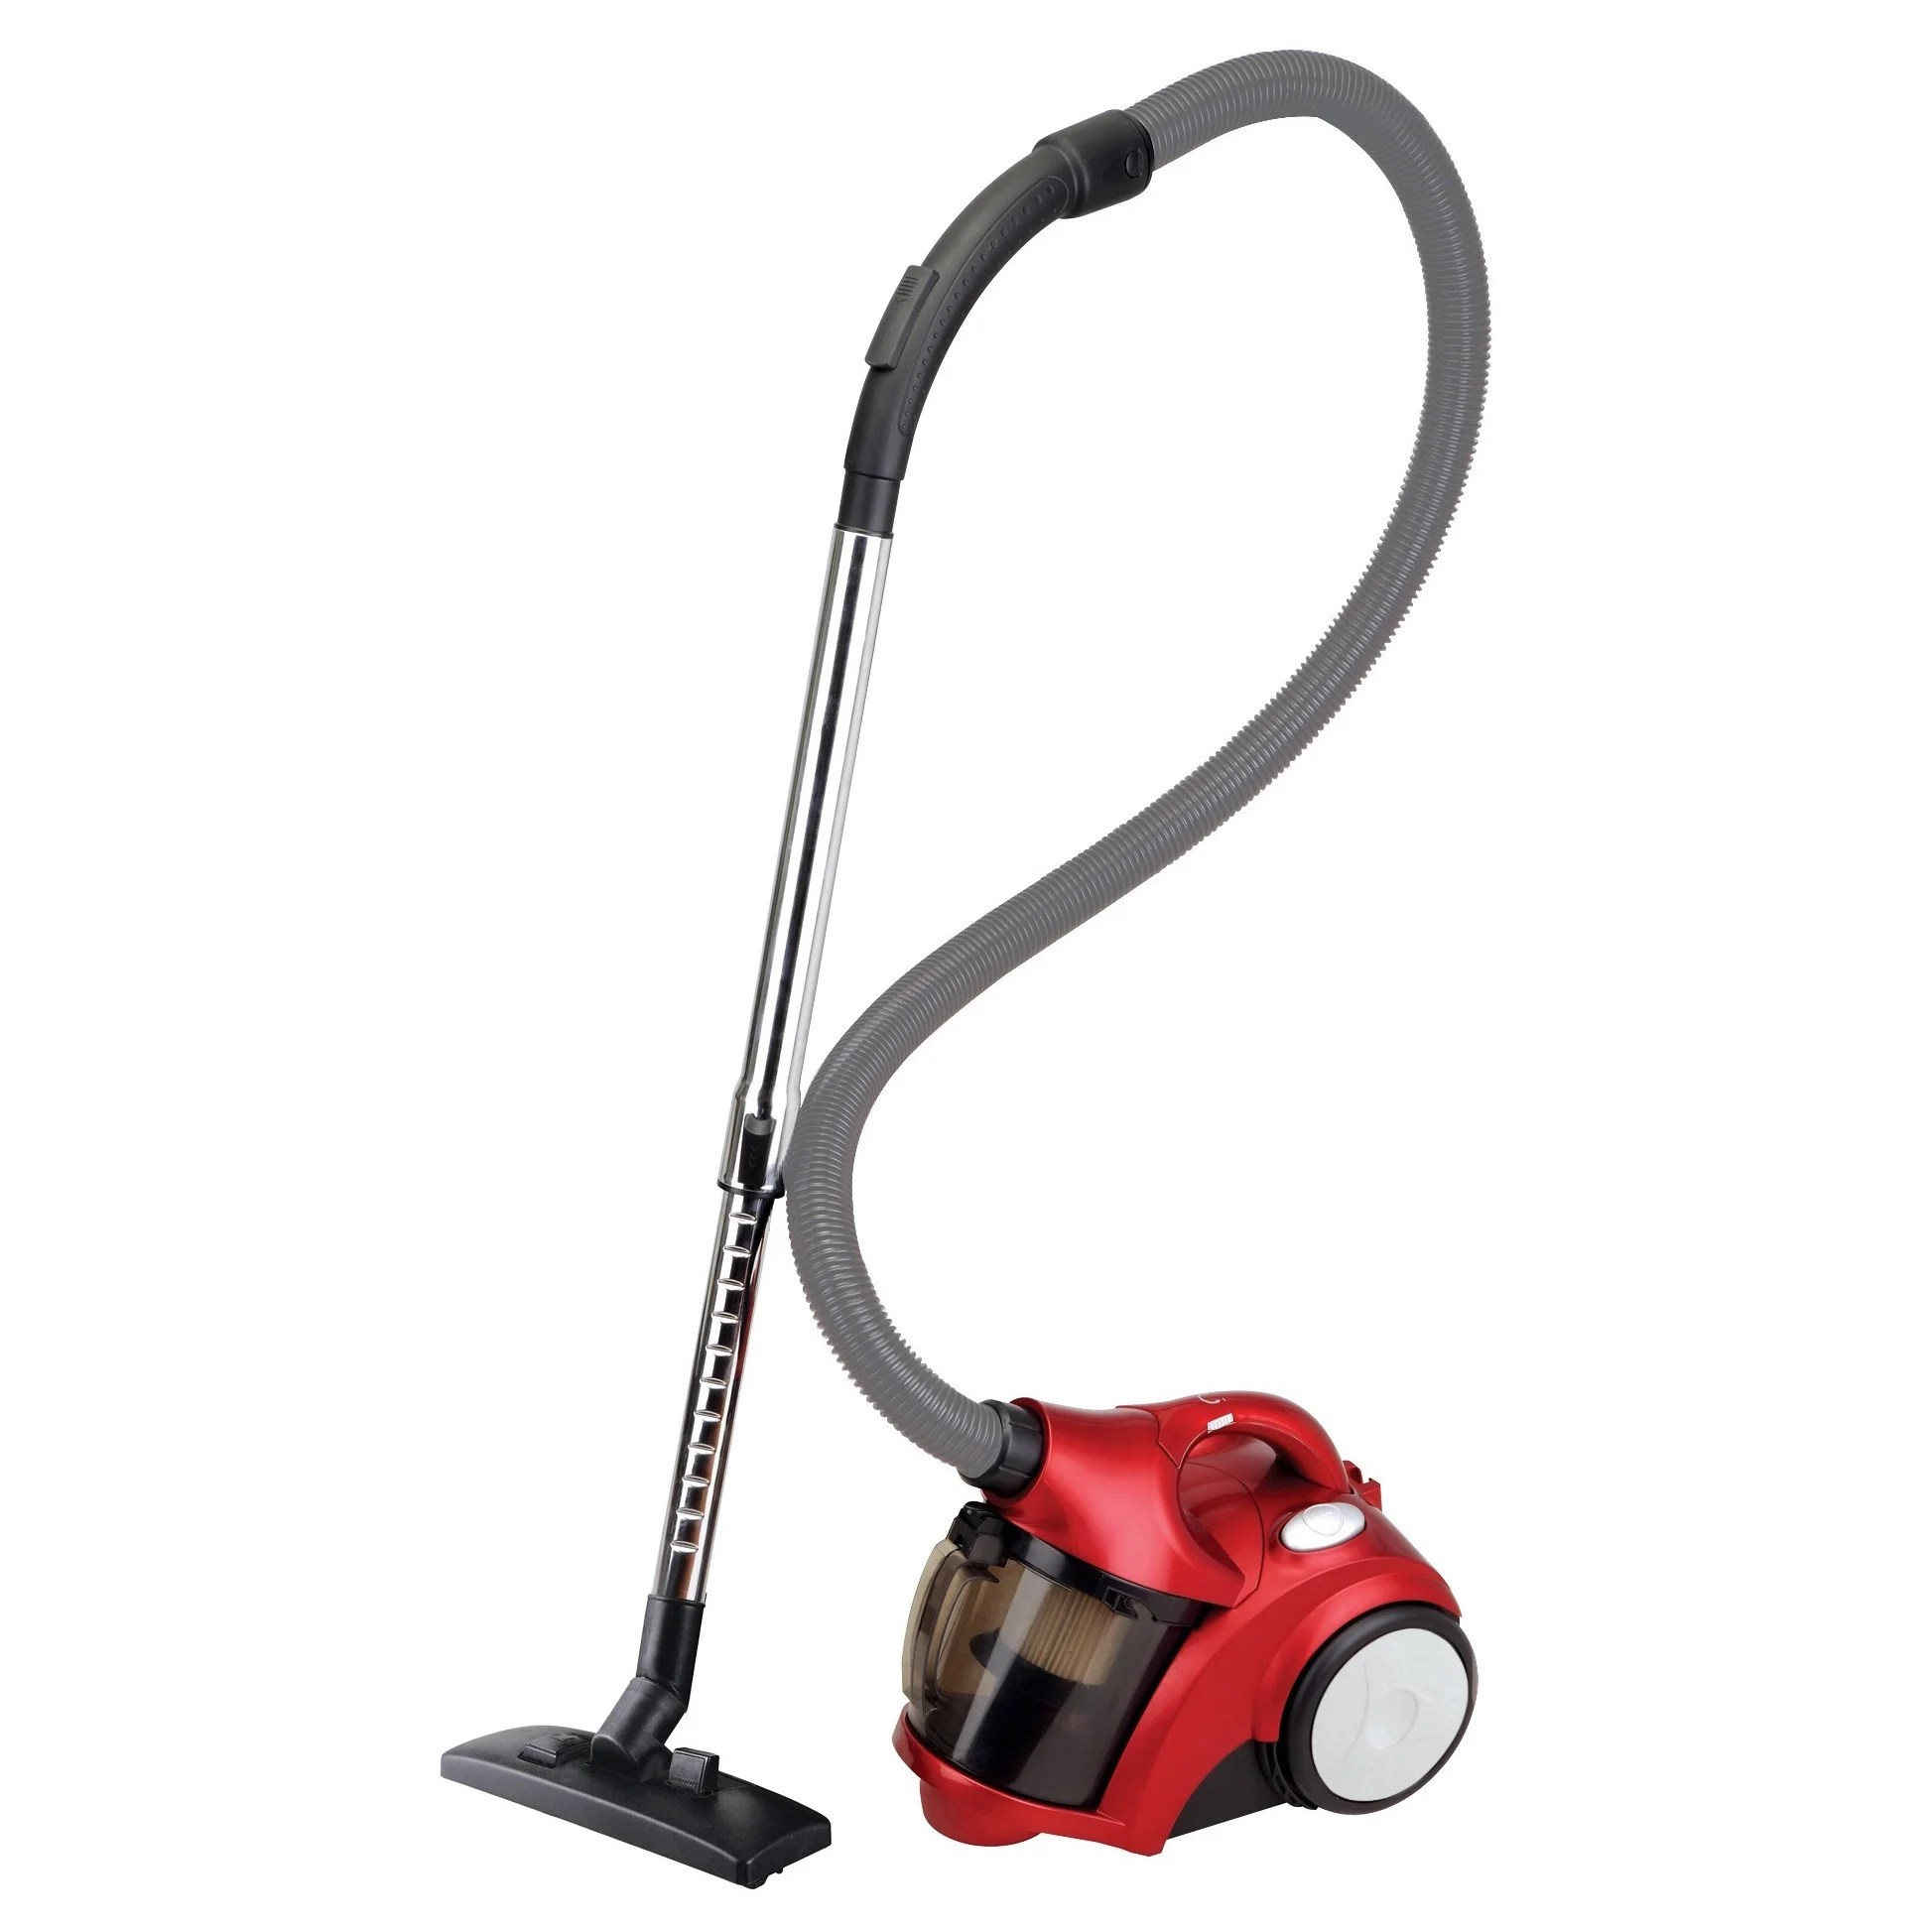 Sofa Vacuum Cleaner Brush Ovente St2500r1 Red Bagless Cyclonic Vacuum With Sofa Brush